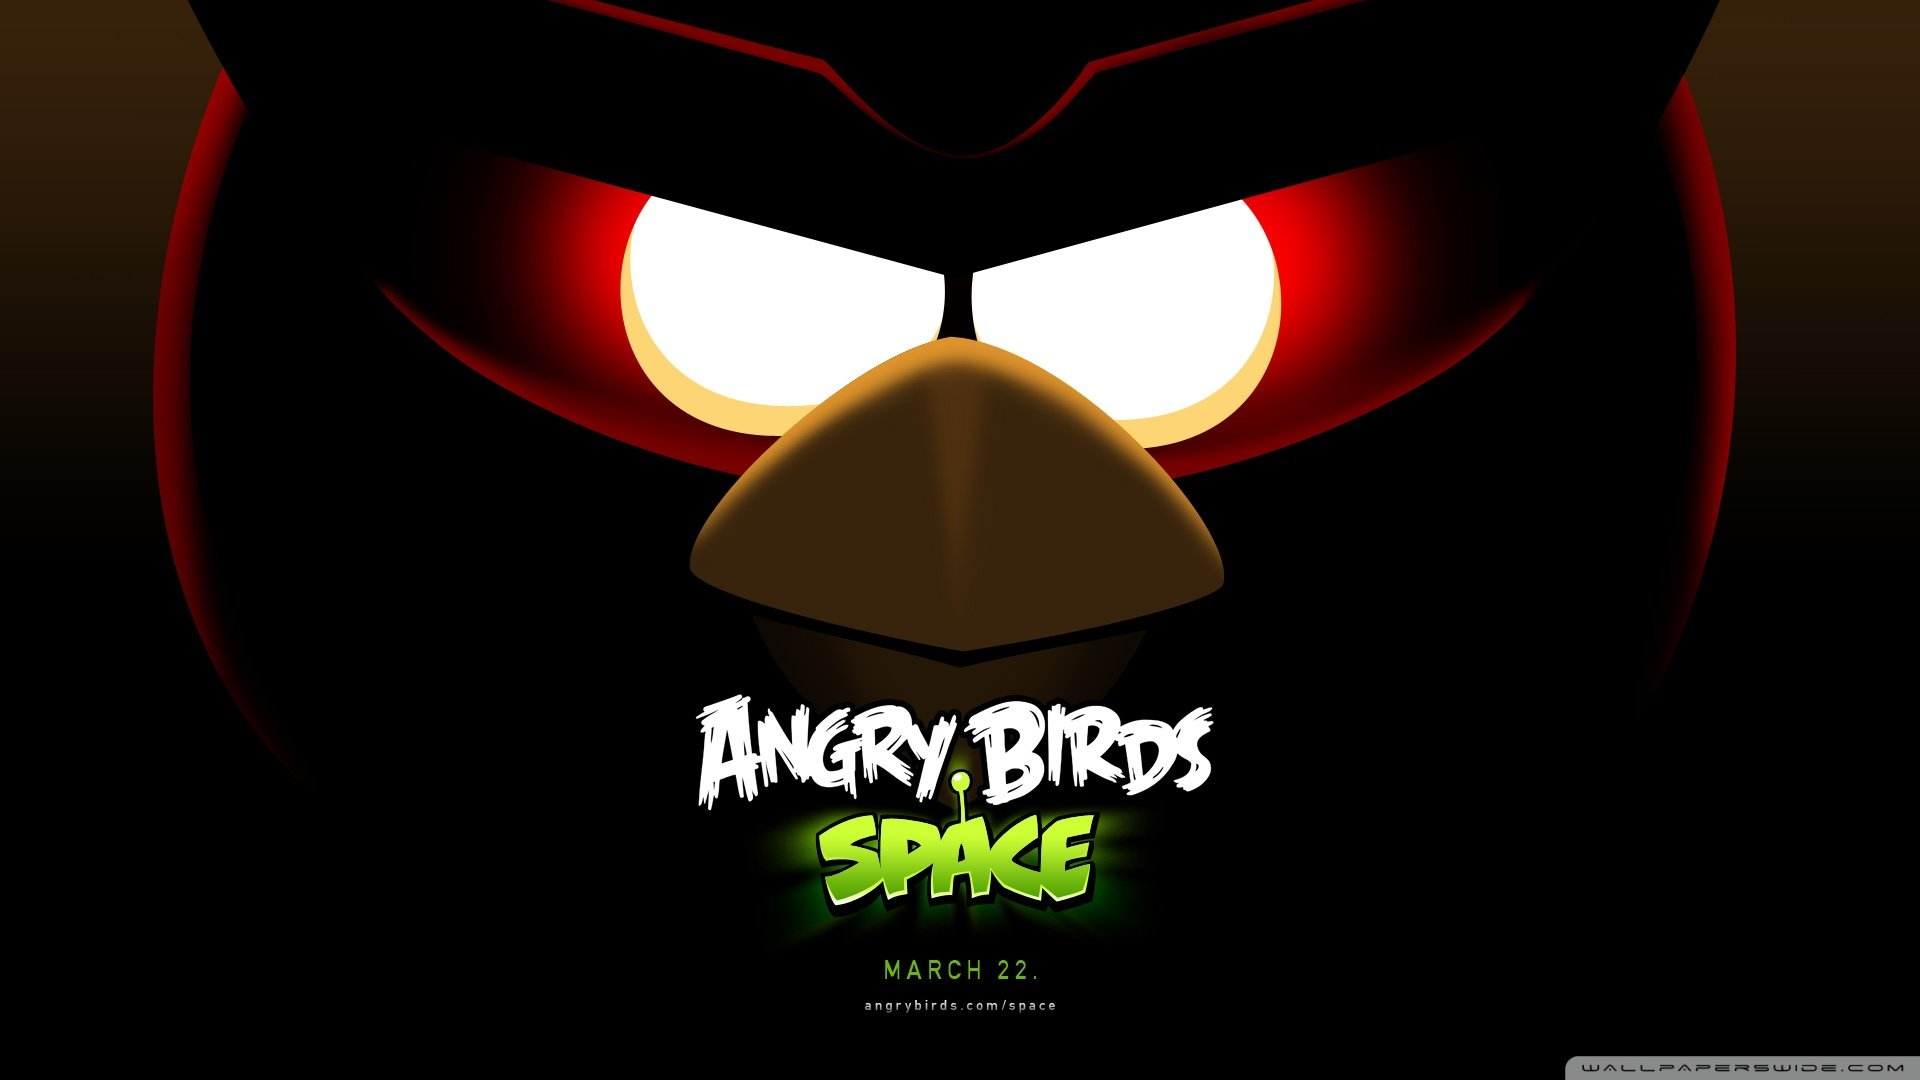 Angry Birds HD Wallpapers and Background Images   stmednet 1920x1080